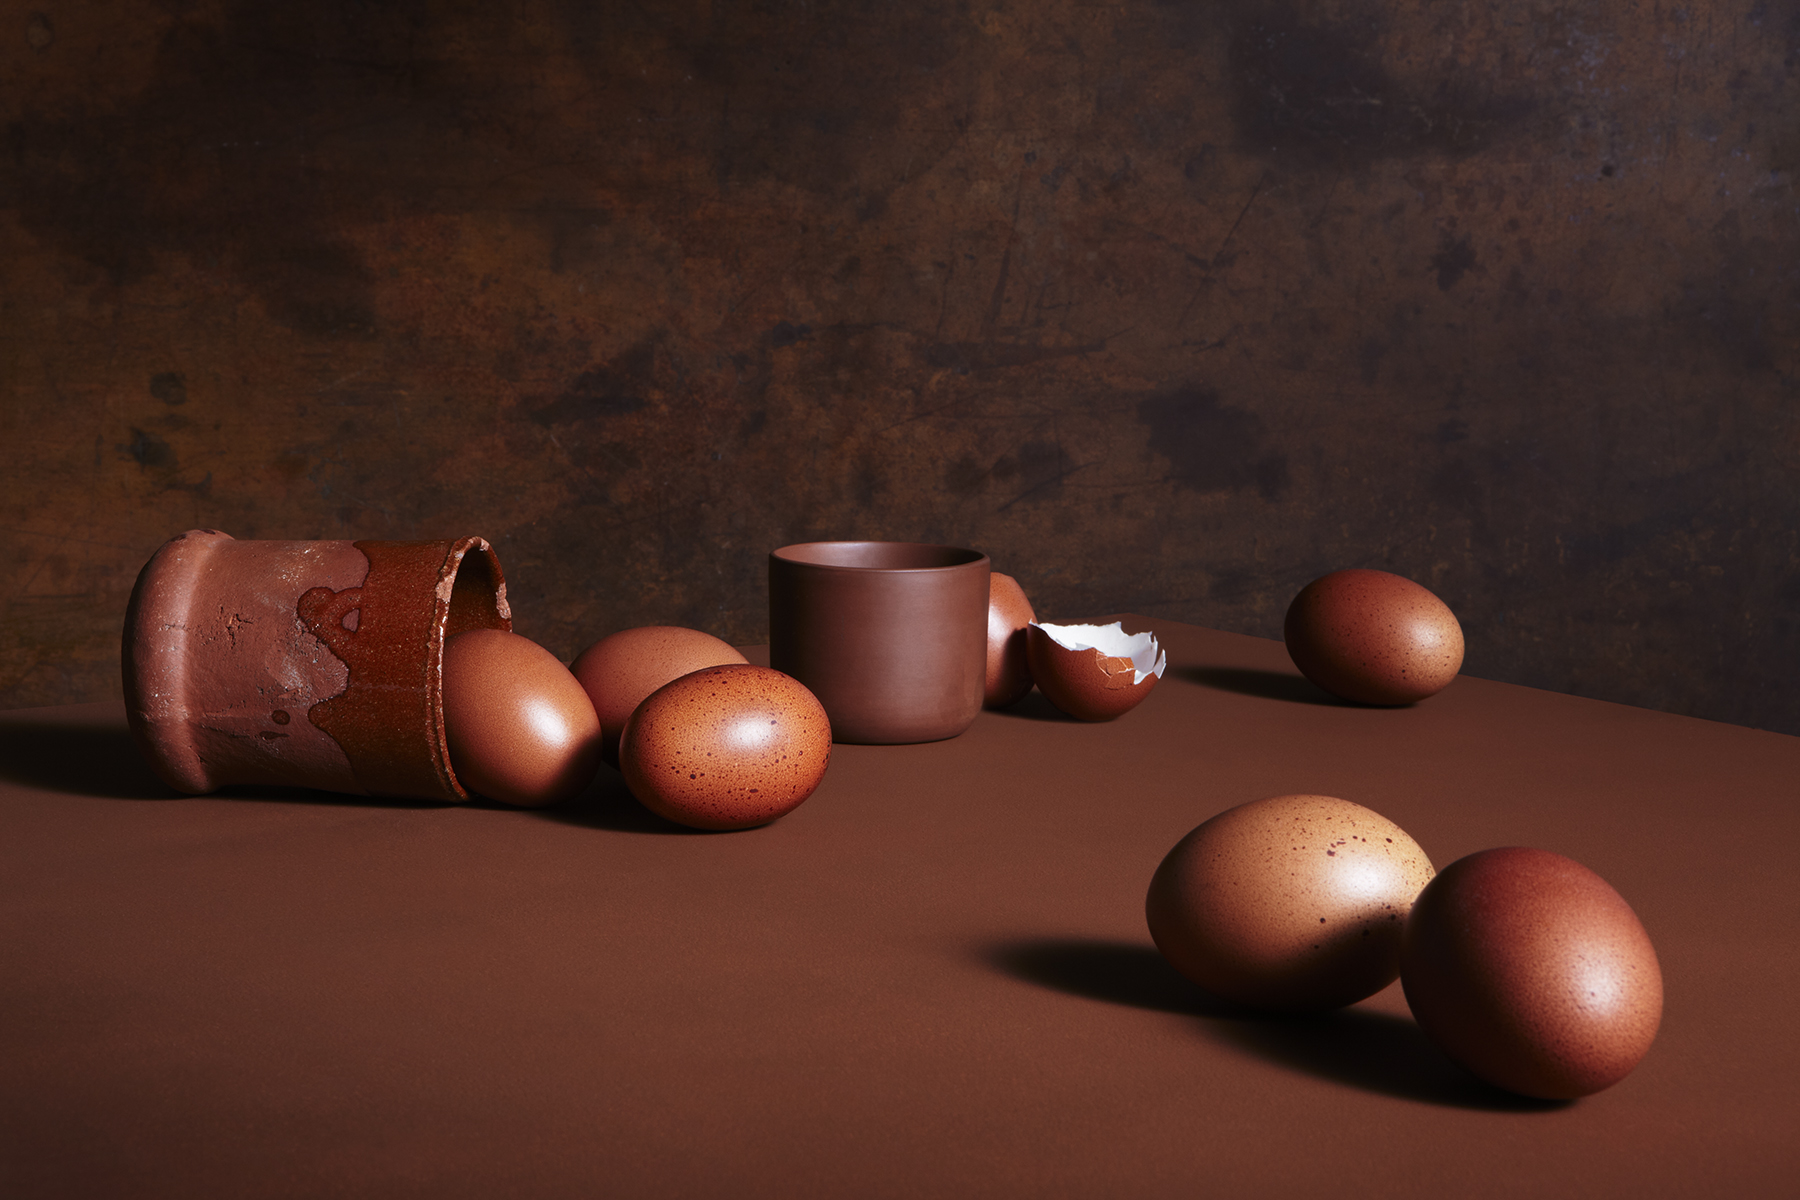 katie hammond brown exploration of vanitas eggs still life